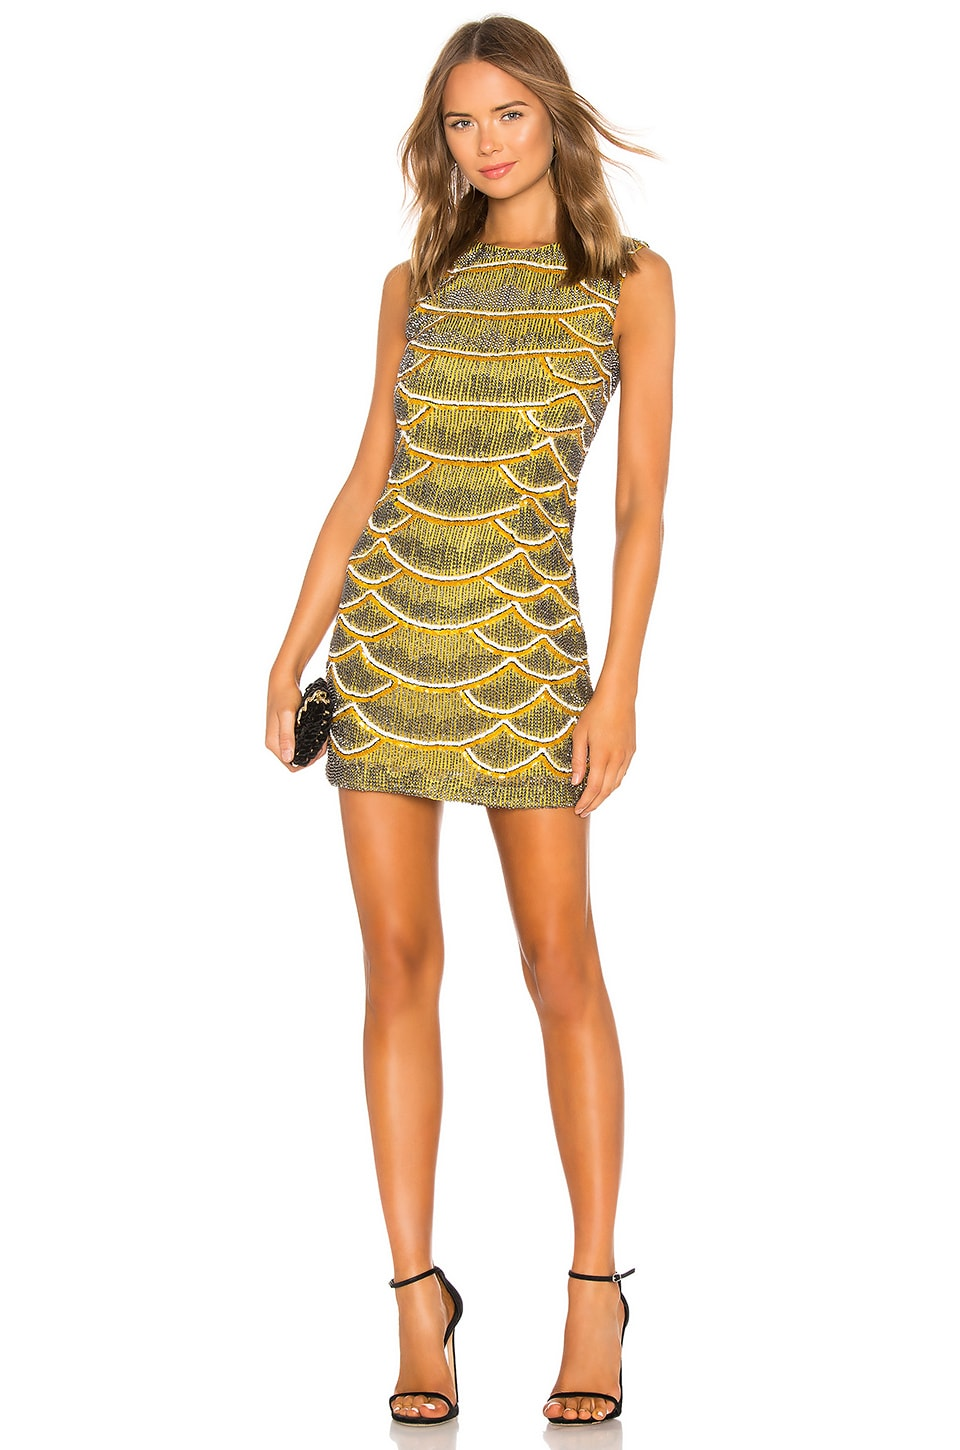 X by NBD Monty Embellished Python Mini Dress in Yellow